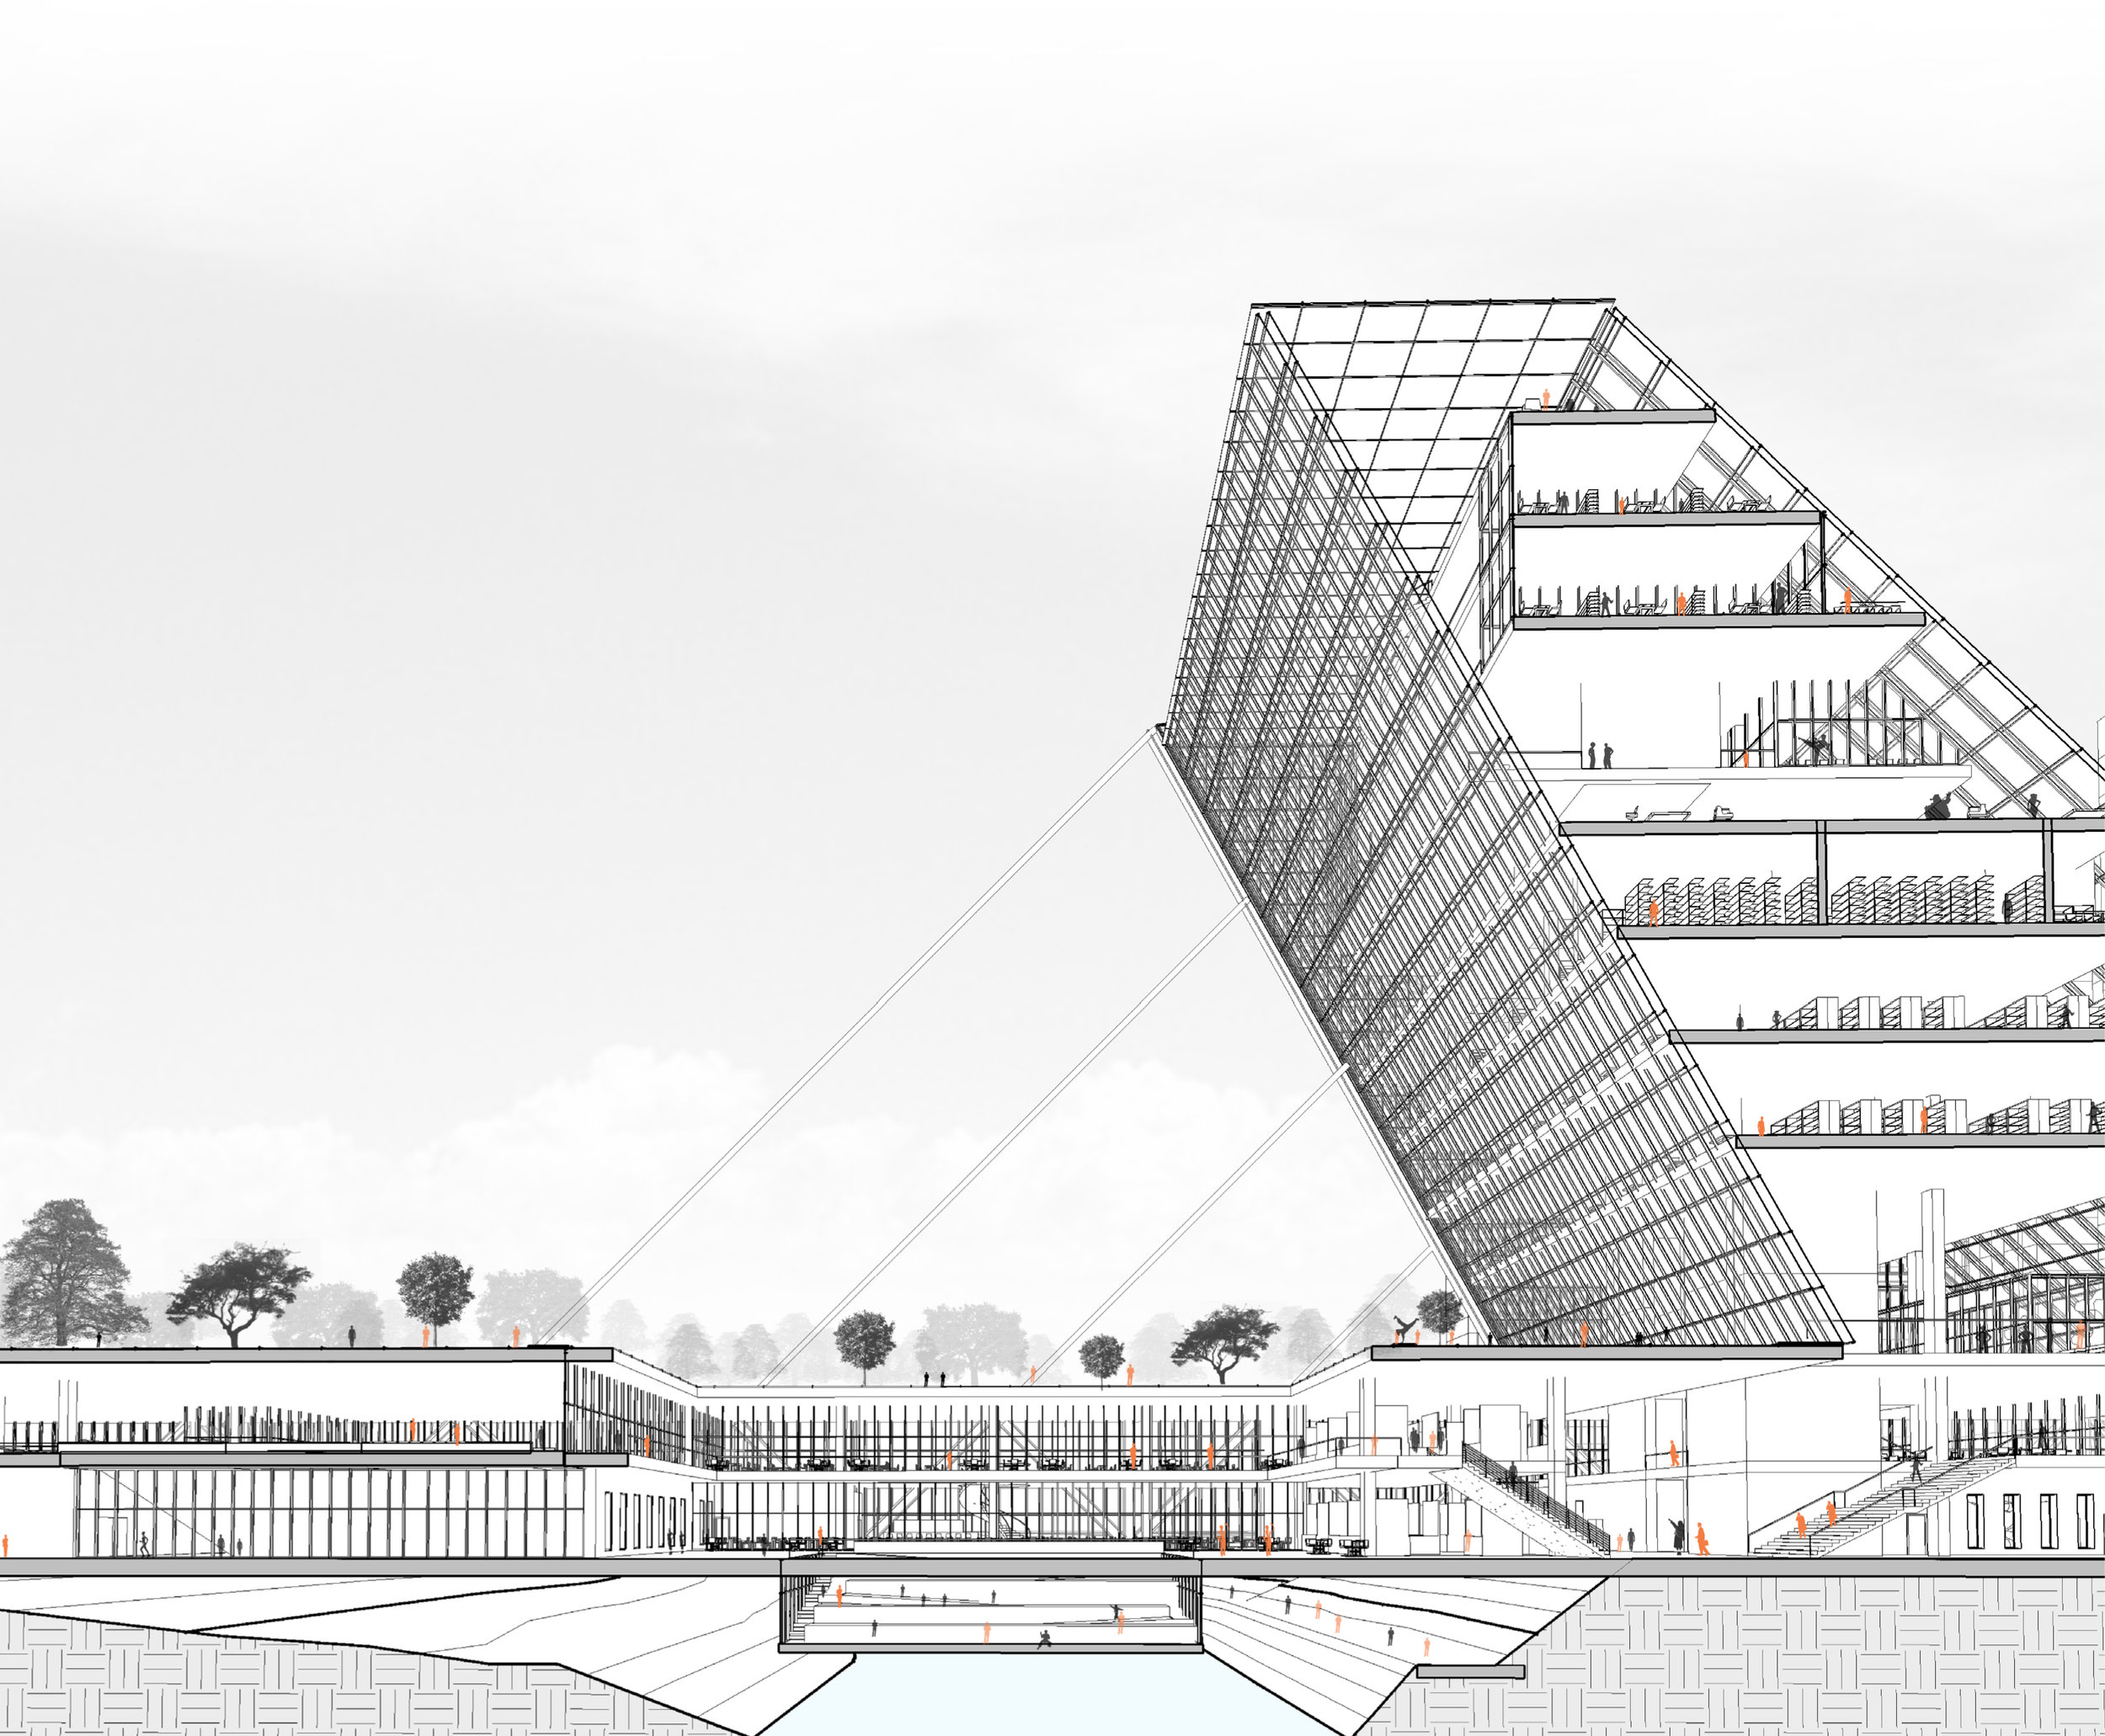 Design proposal by Alexander Petrounine